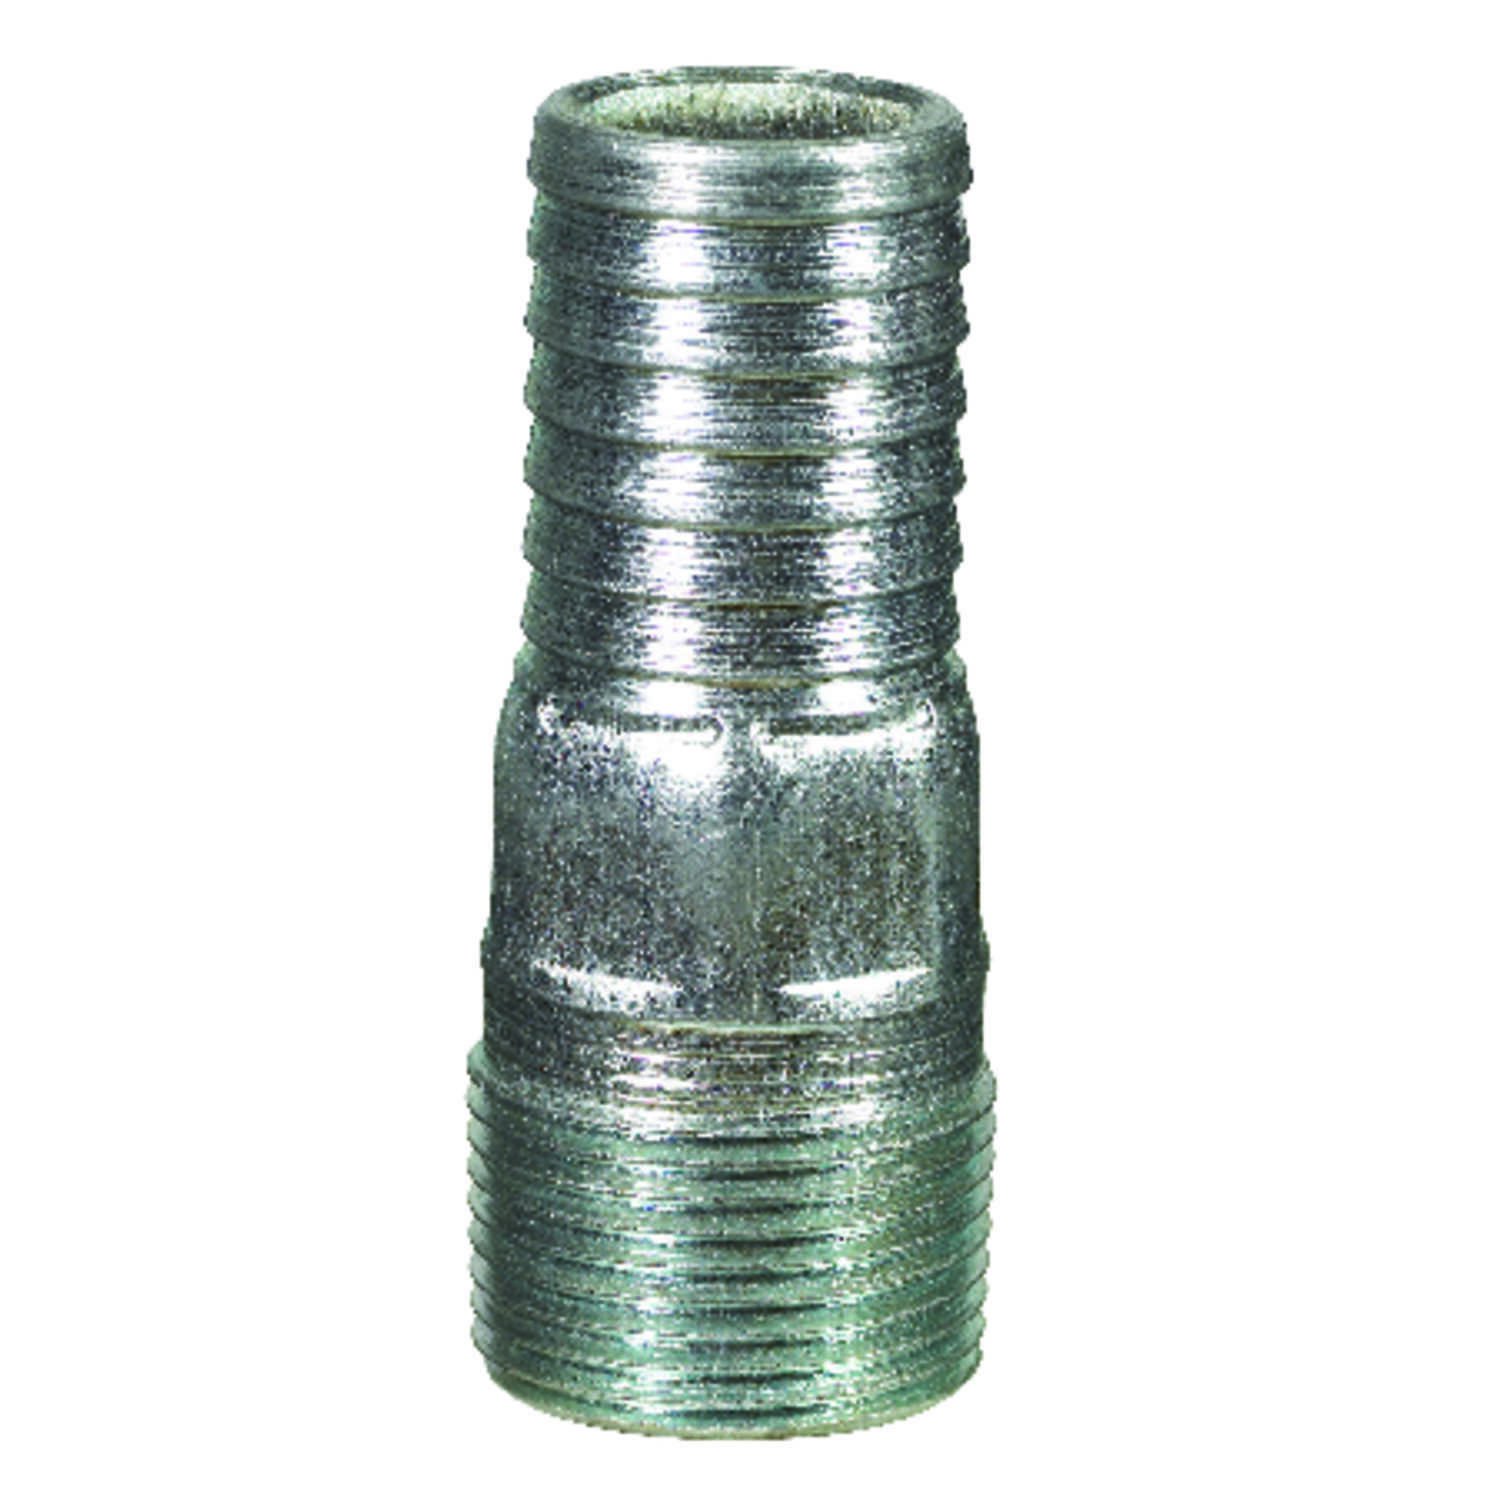 B & K  1-1/2 in. Barb   x 1-1/2 in. Dia. MPT  Galvanized Steel  Adapter